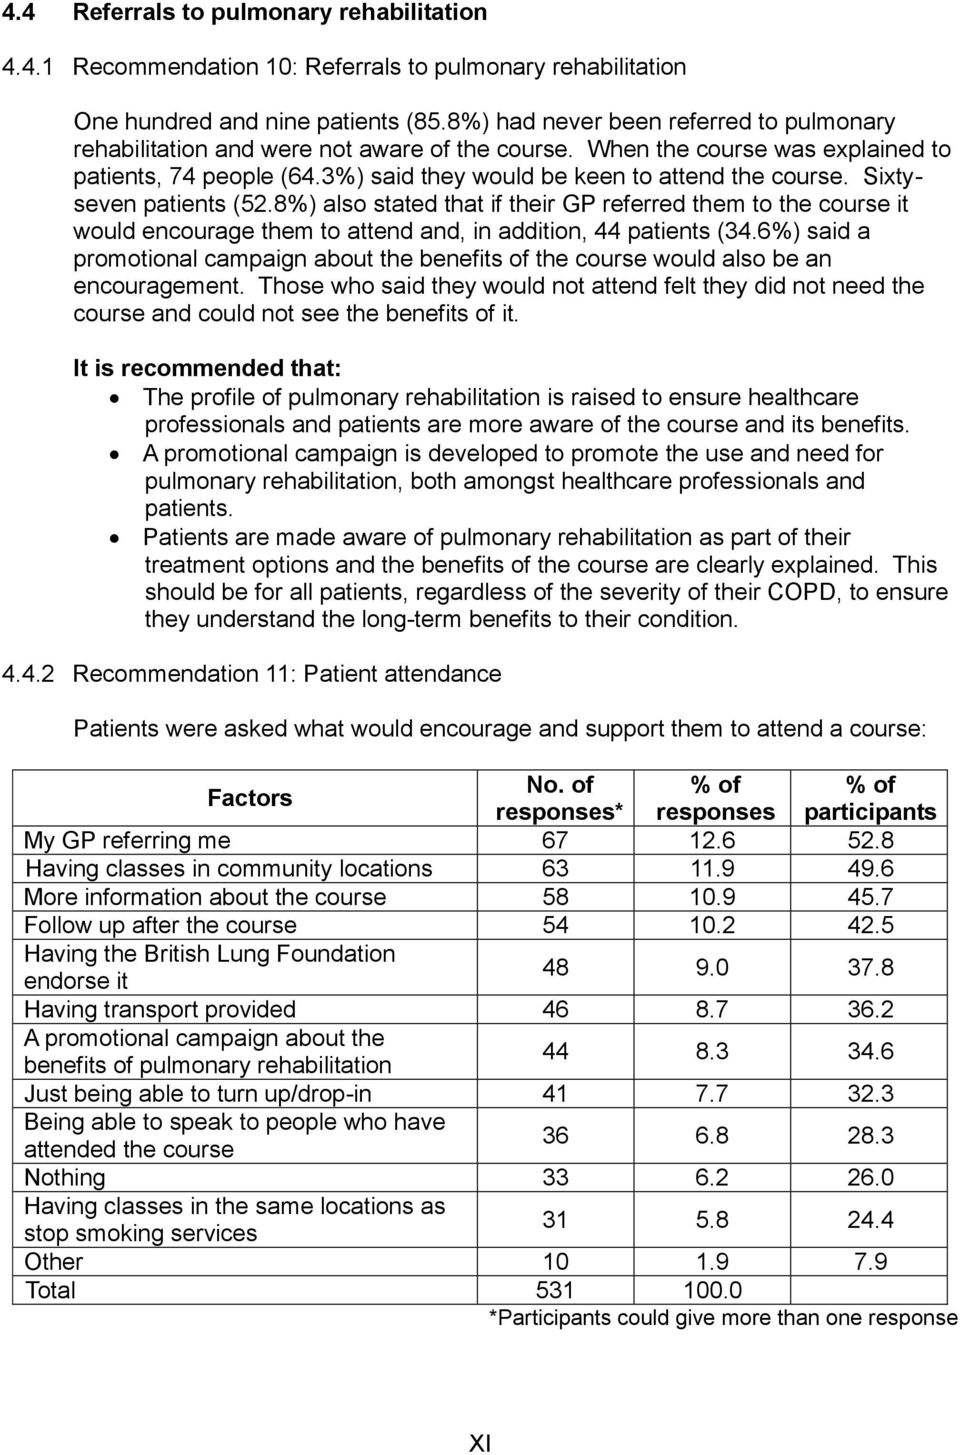 Sixtyseven patients (52.8%) also stated that if their GP referred them to the course it would encourage them to attend and, in addition, 44 patients (34.